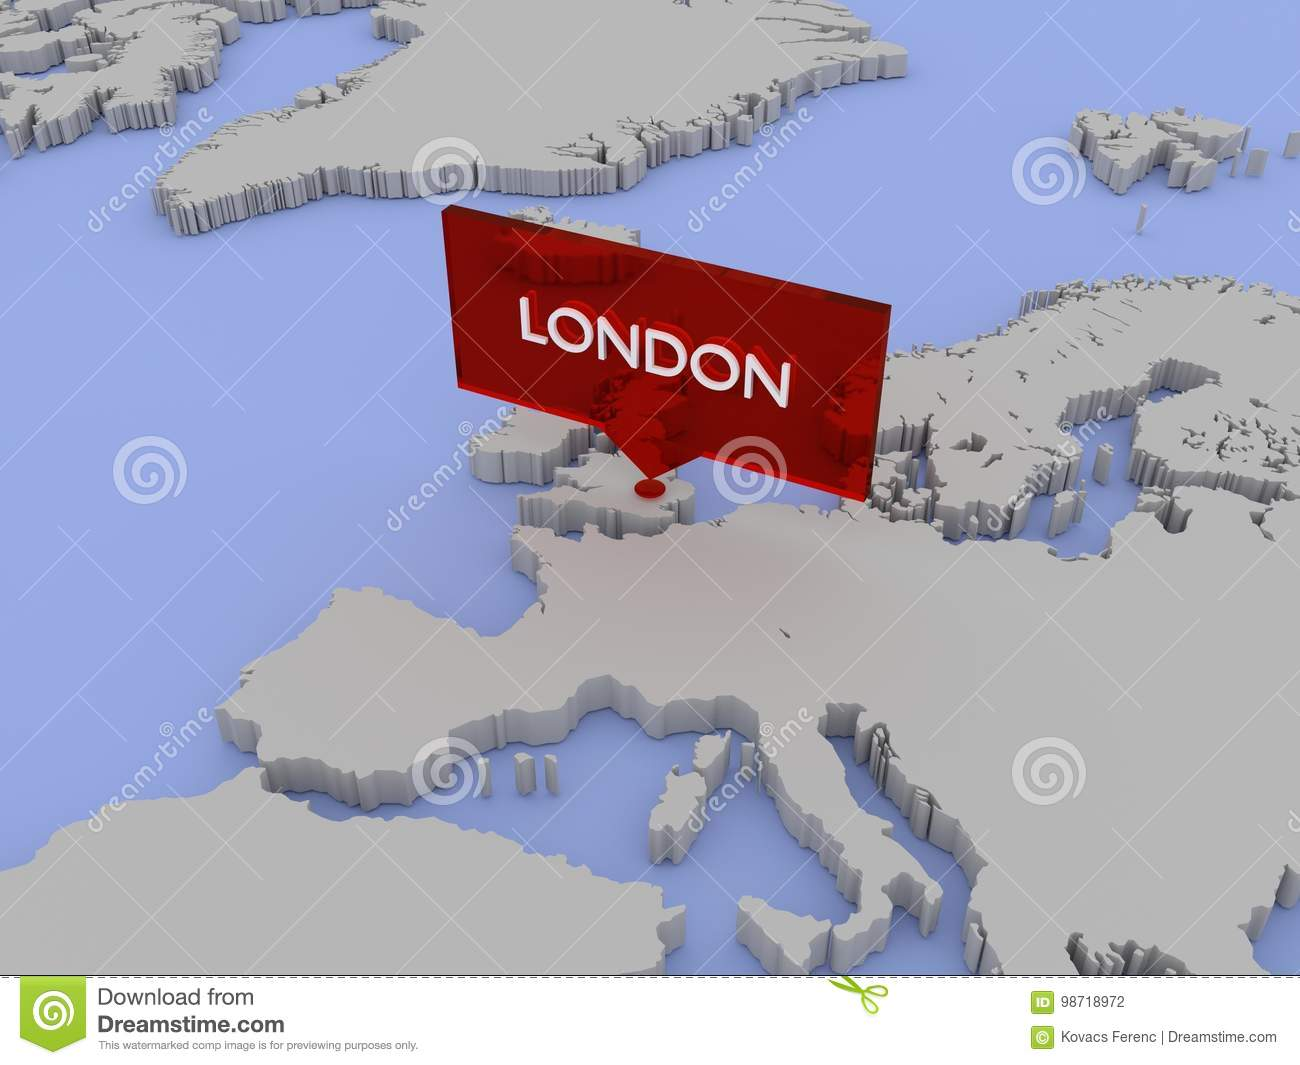 Carte Du Monde Londres.Illustration De Carte Du Monde 3d Londres Angleterre